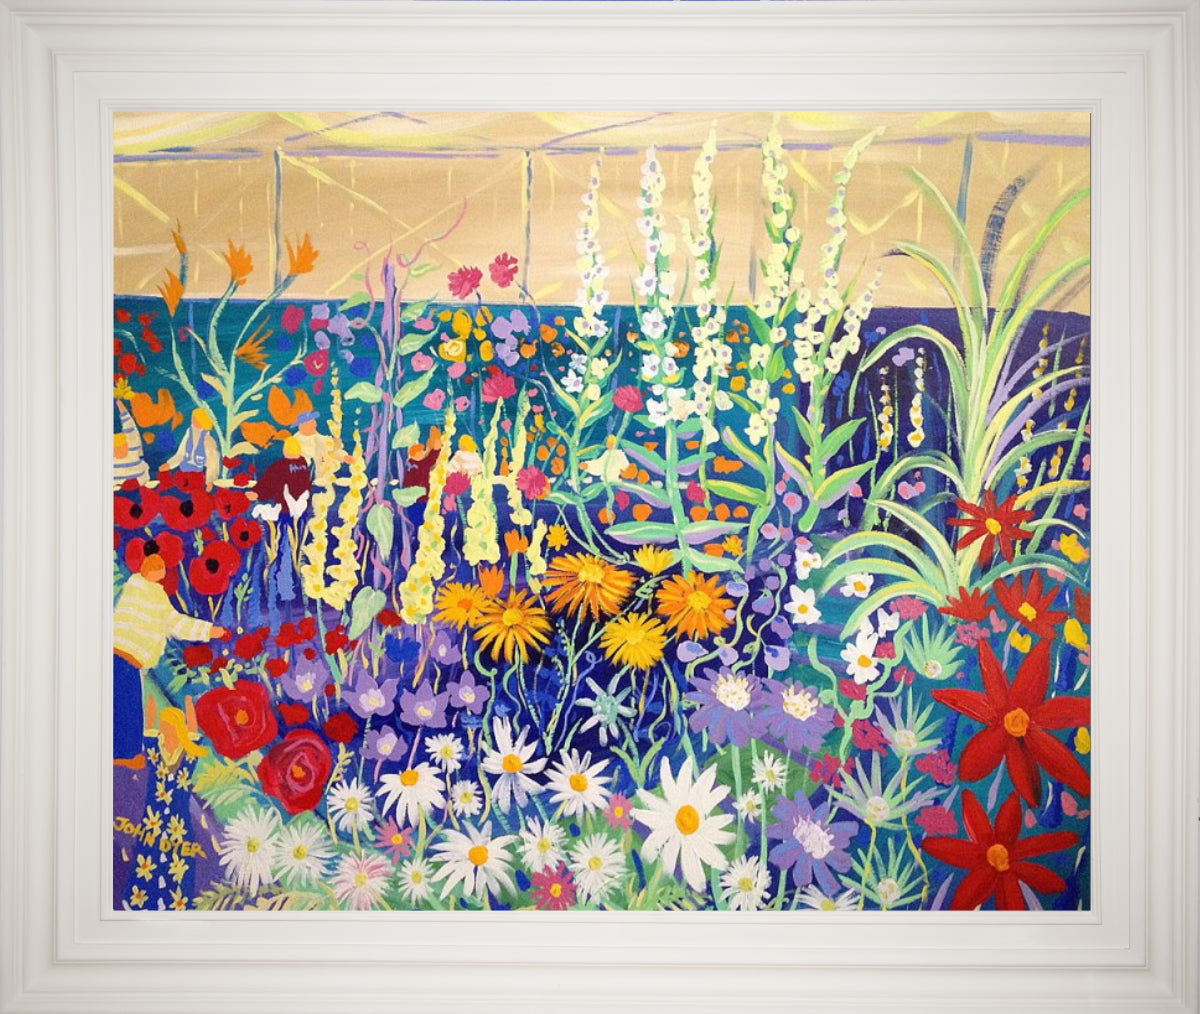 Original Painting by John Dyer. Prize Blooms. RHS Tent BBC Gardeners' World Live.